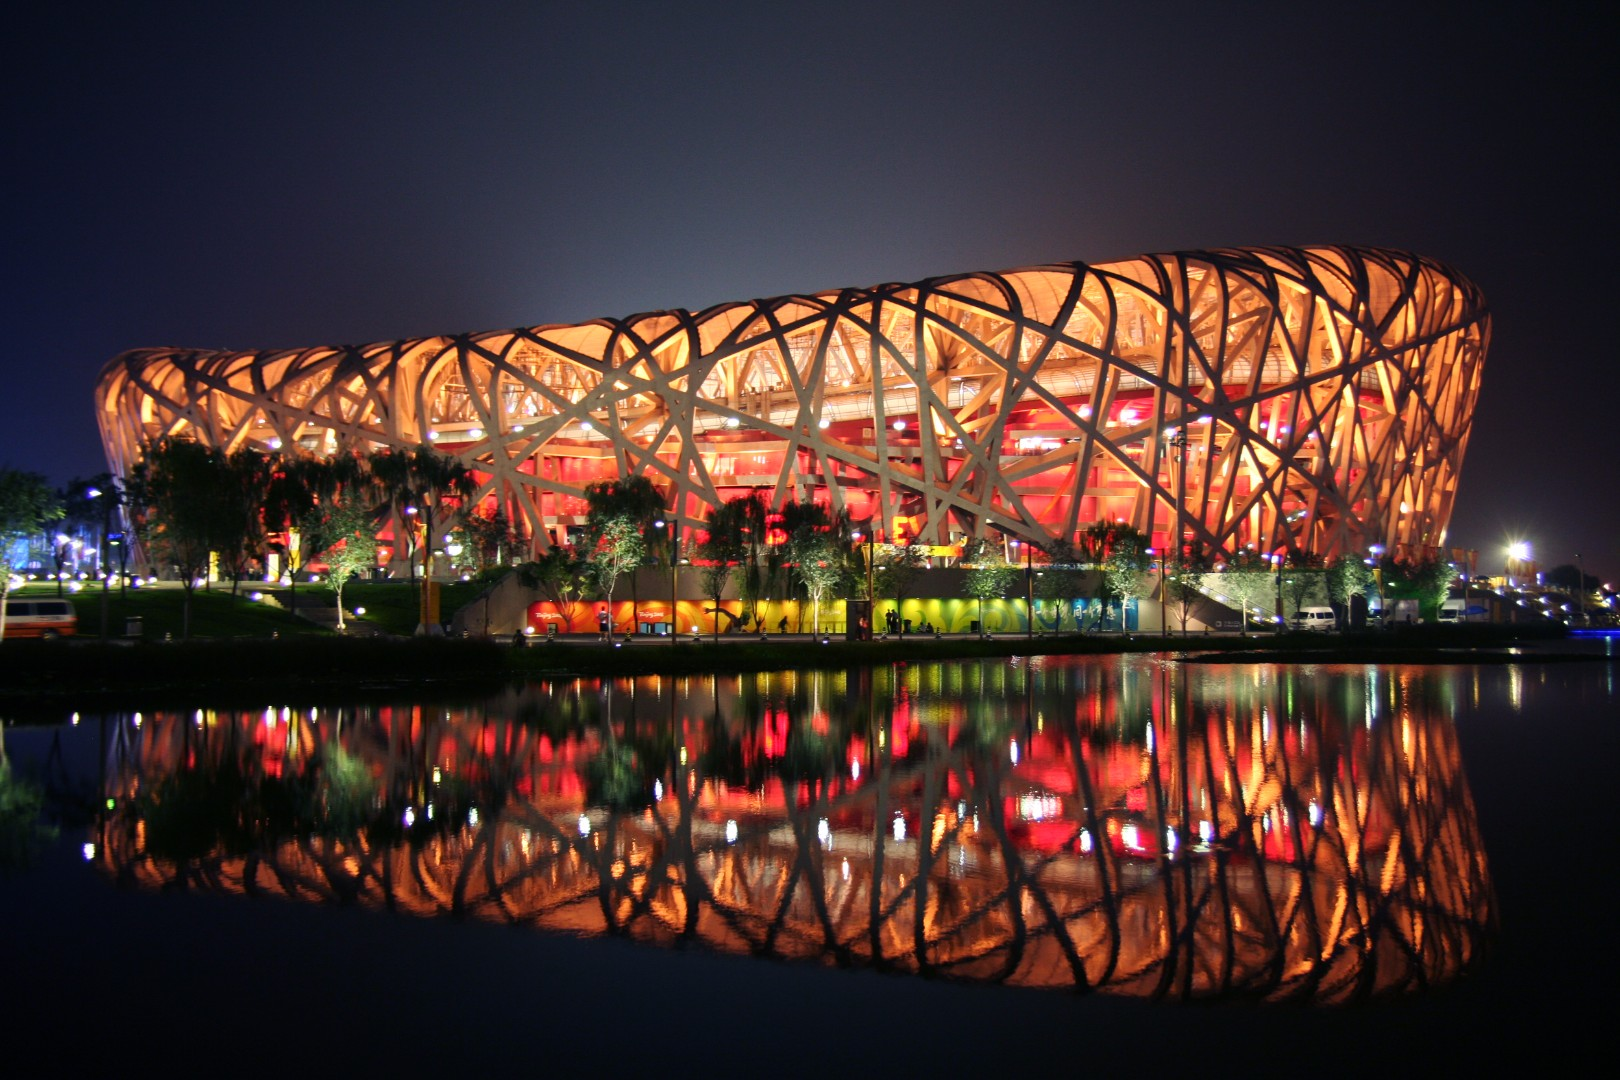 Стадион «Птичье гнездо» (Bird'sNest). Beijing, China.